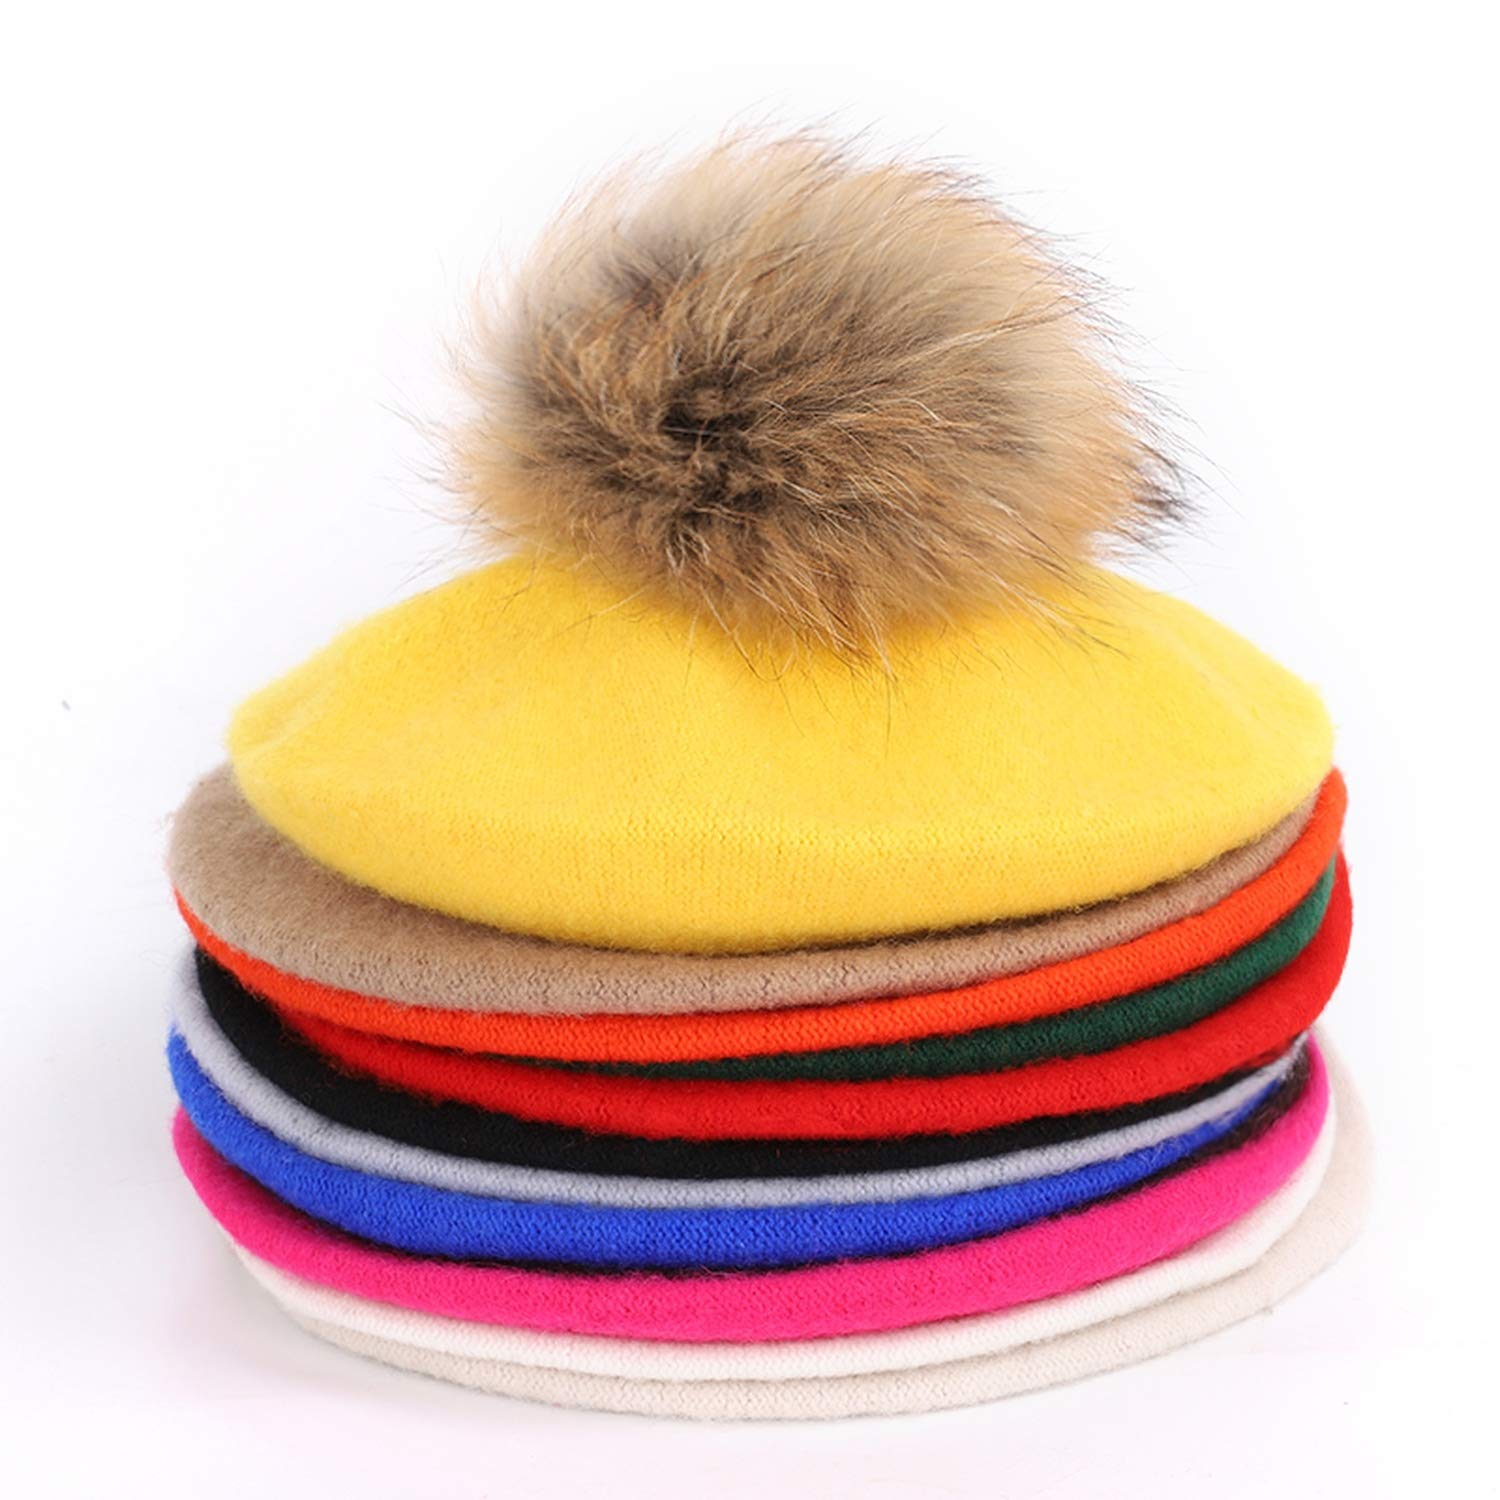 08f5473a62f213 Accessories Painter Beret Outdoor Autumn Winter Knit caps Solid Raccoon Fur  pom-pom Vintage Beret,Red1